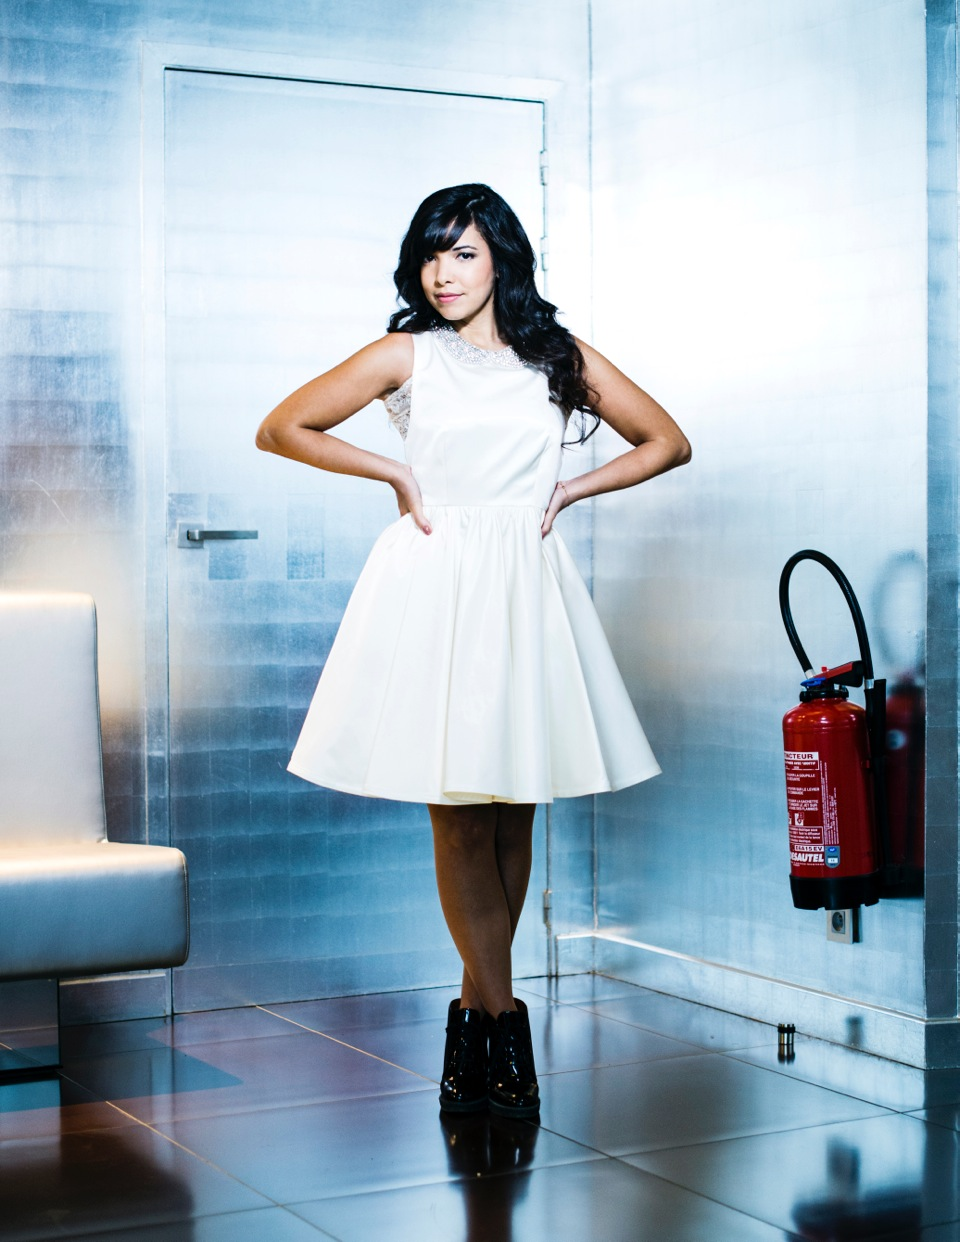 Indila_Paris Match